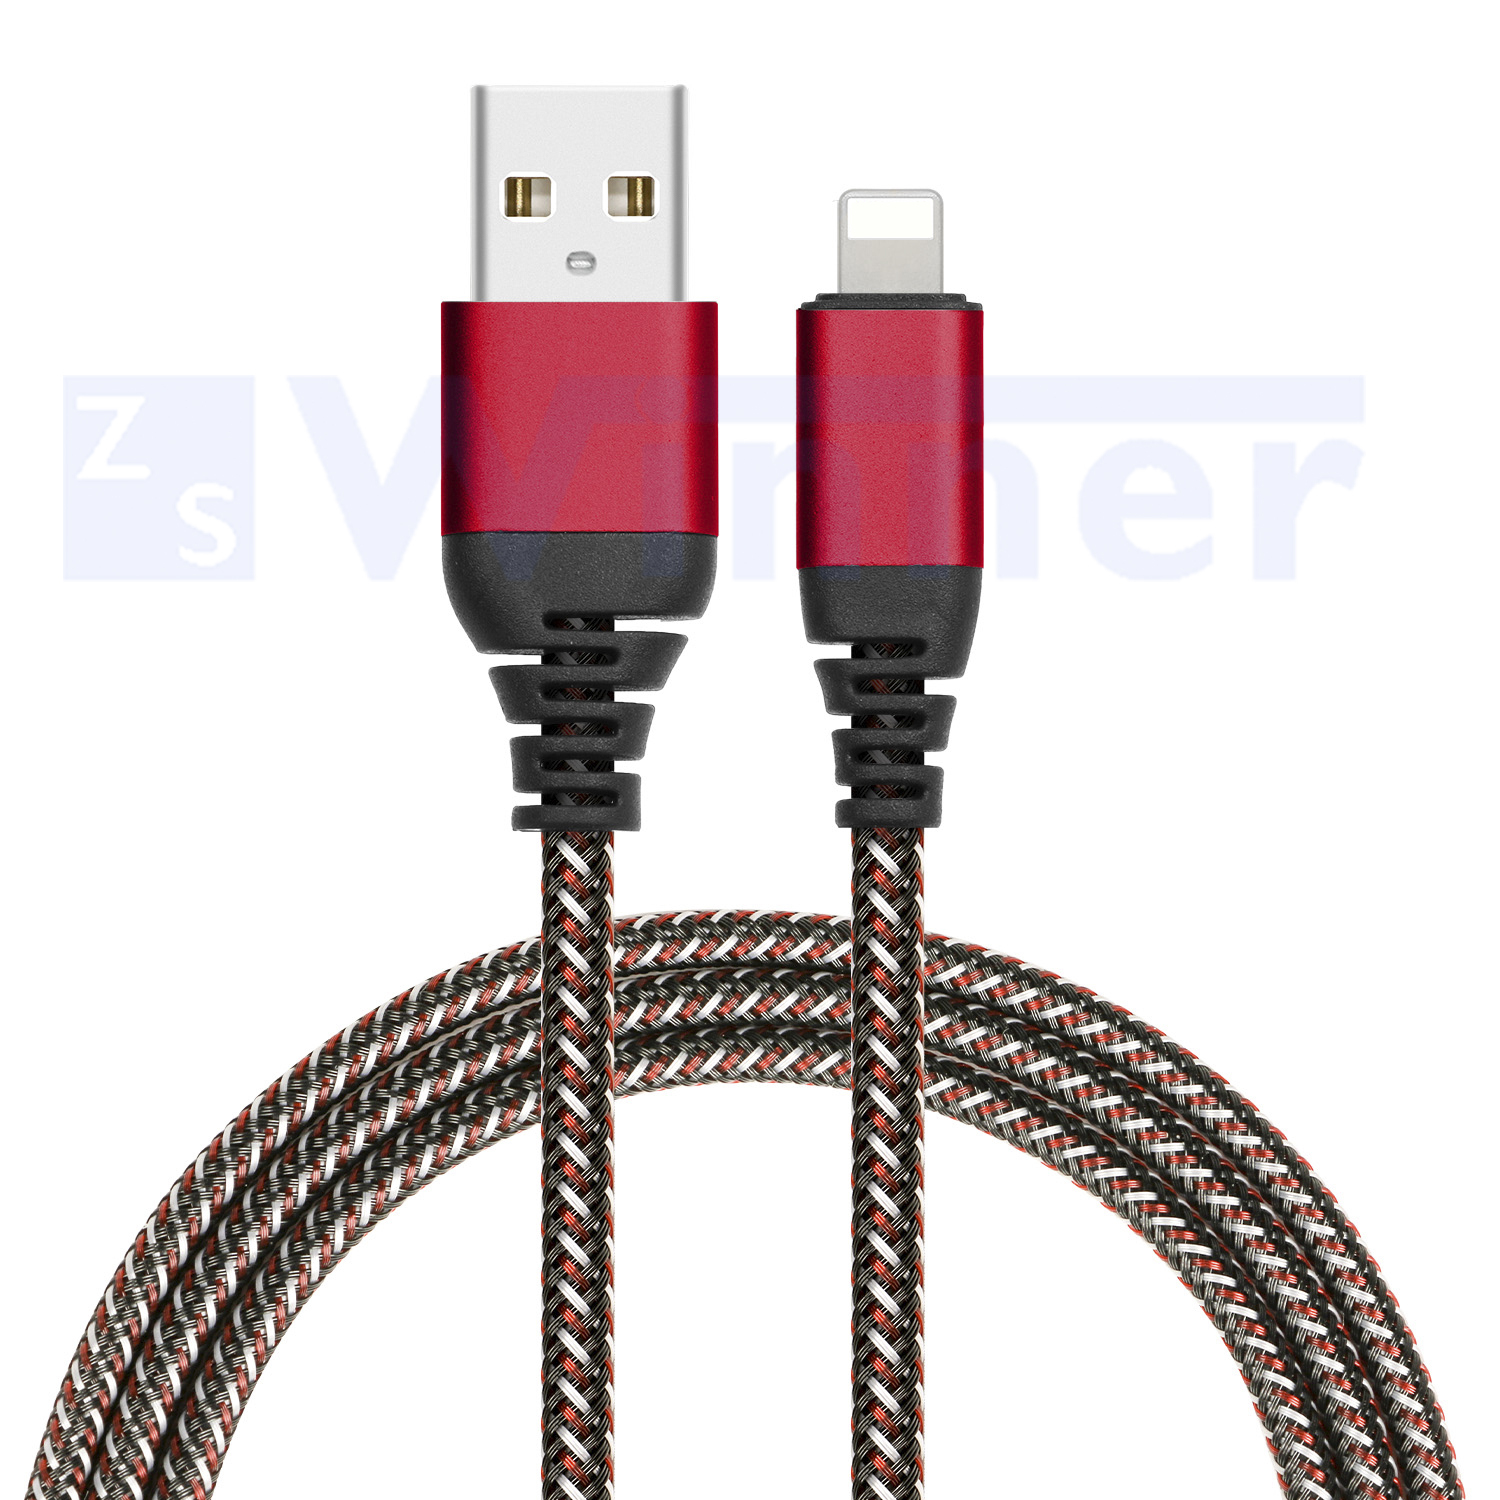 iphone usb cable,apple mfi certified ,lightning charging